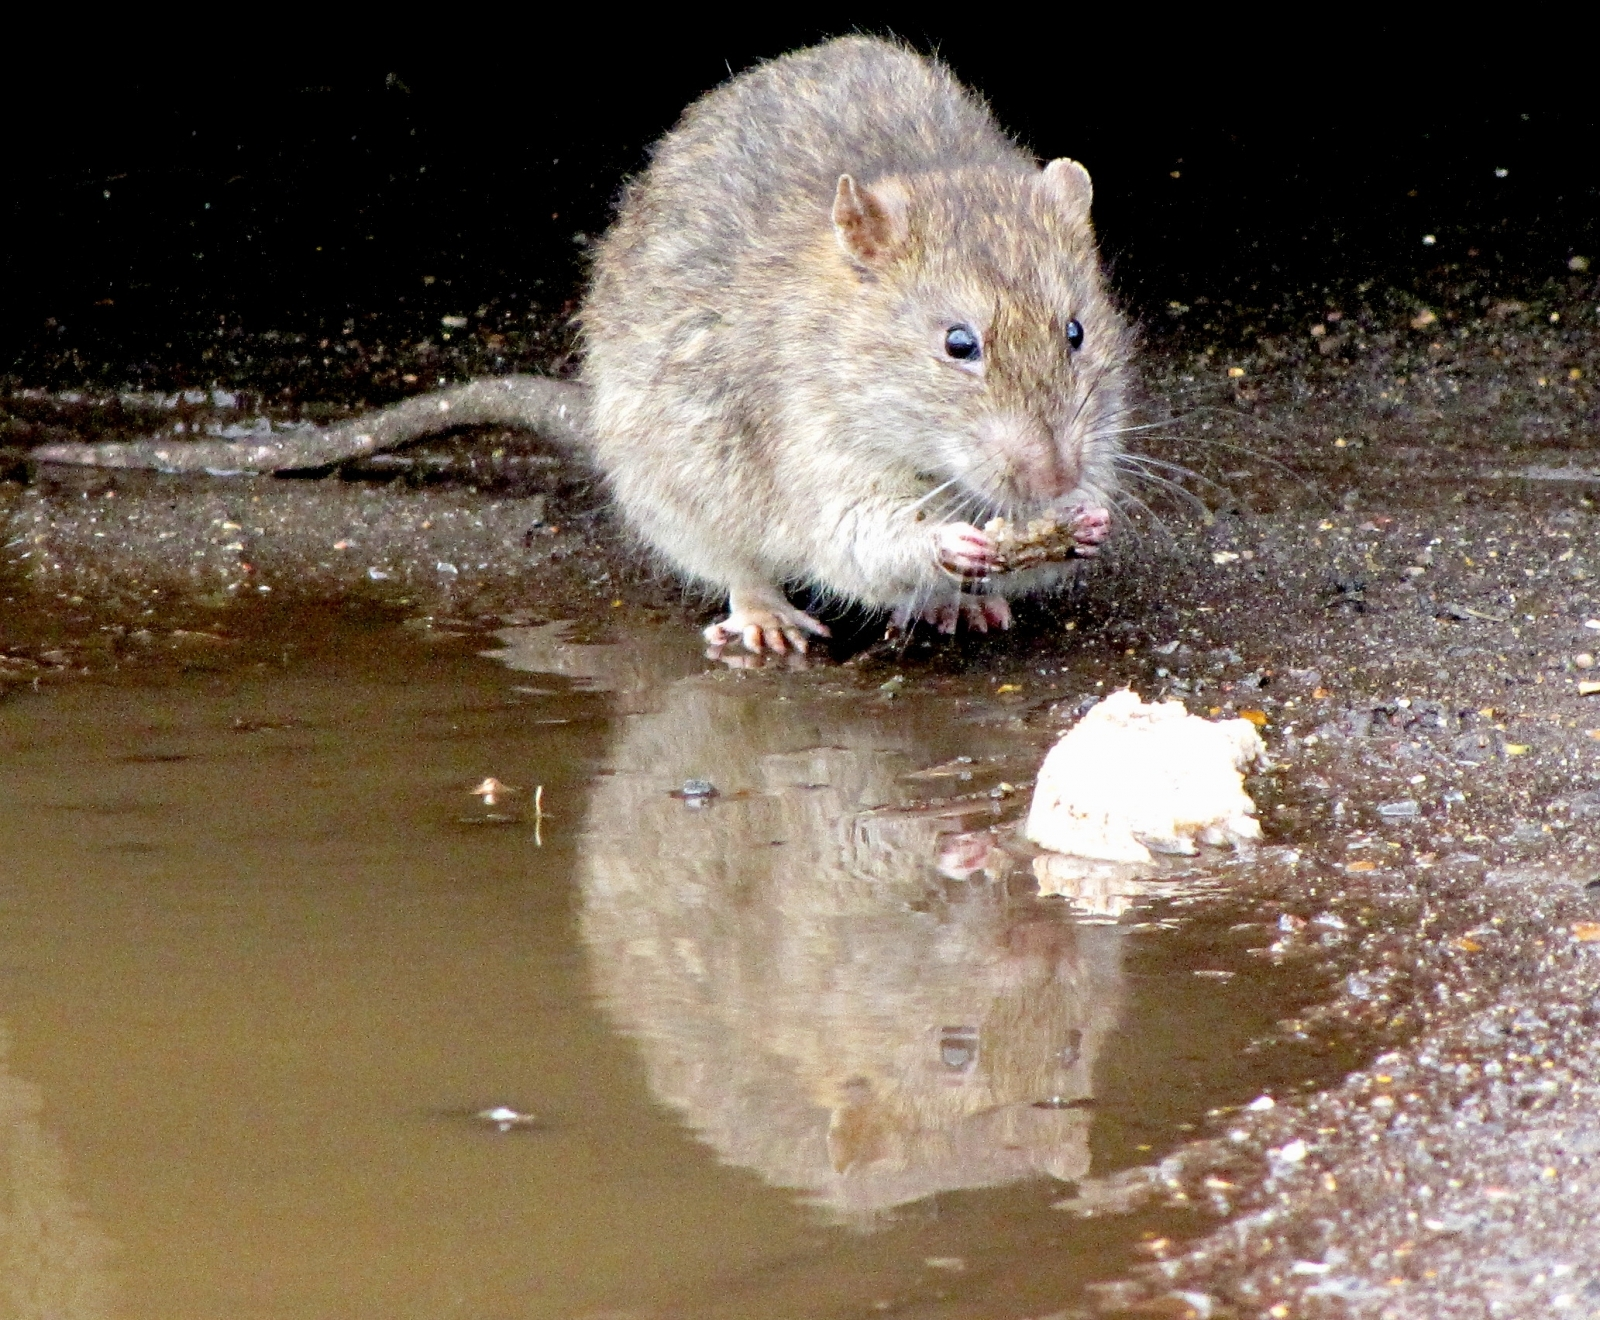 South America: Lethal Hantavirus expected to spread due to climate change